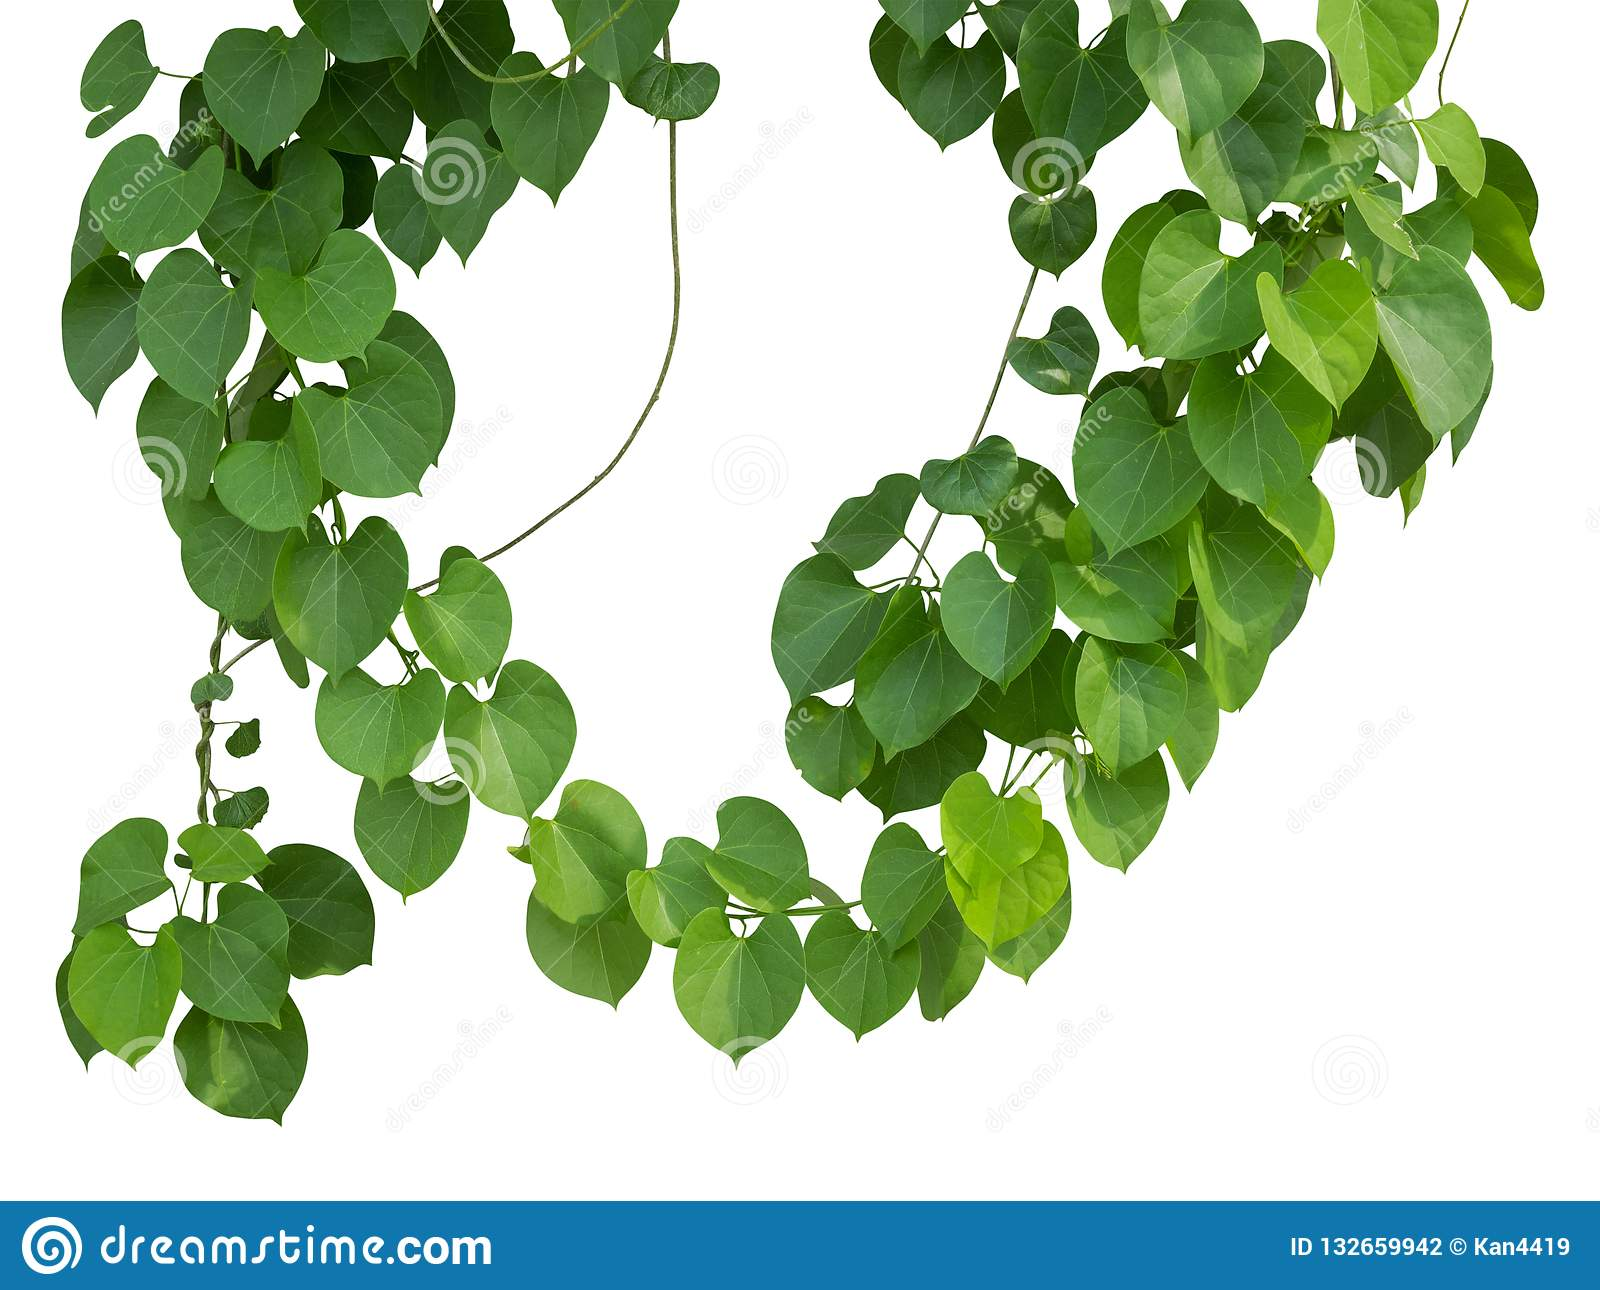 Vine plants climbing on transparent layer have clipping path